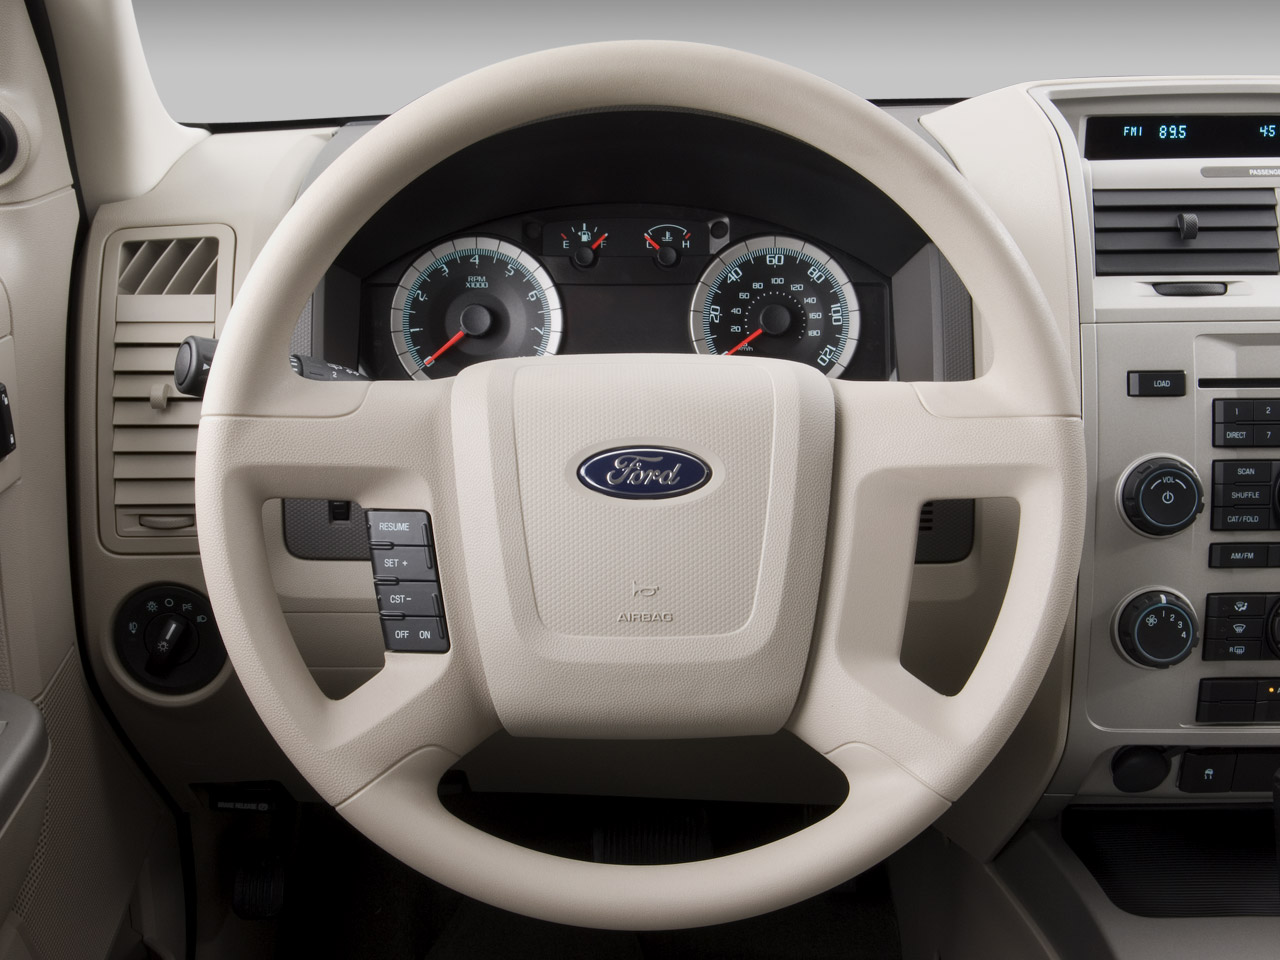 2008 Ford Escape Review Automobile Magazine